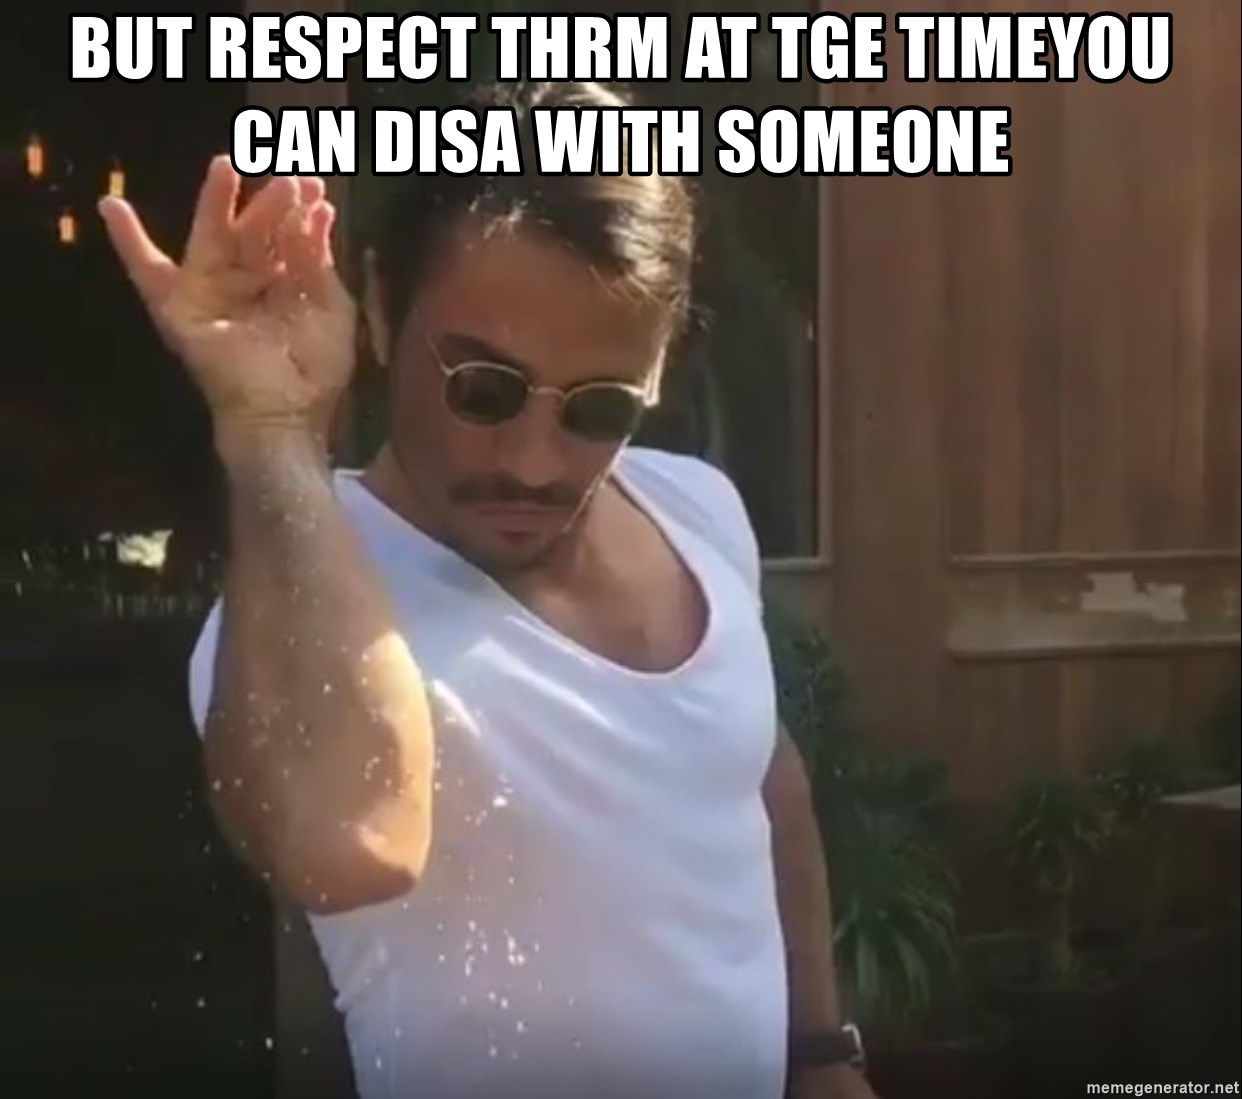 But respect thrm at tge timeYou can disa with someone - Salt guy